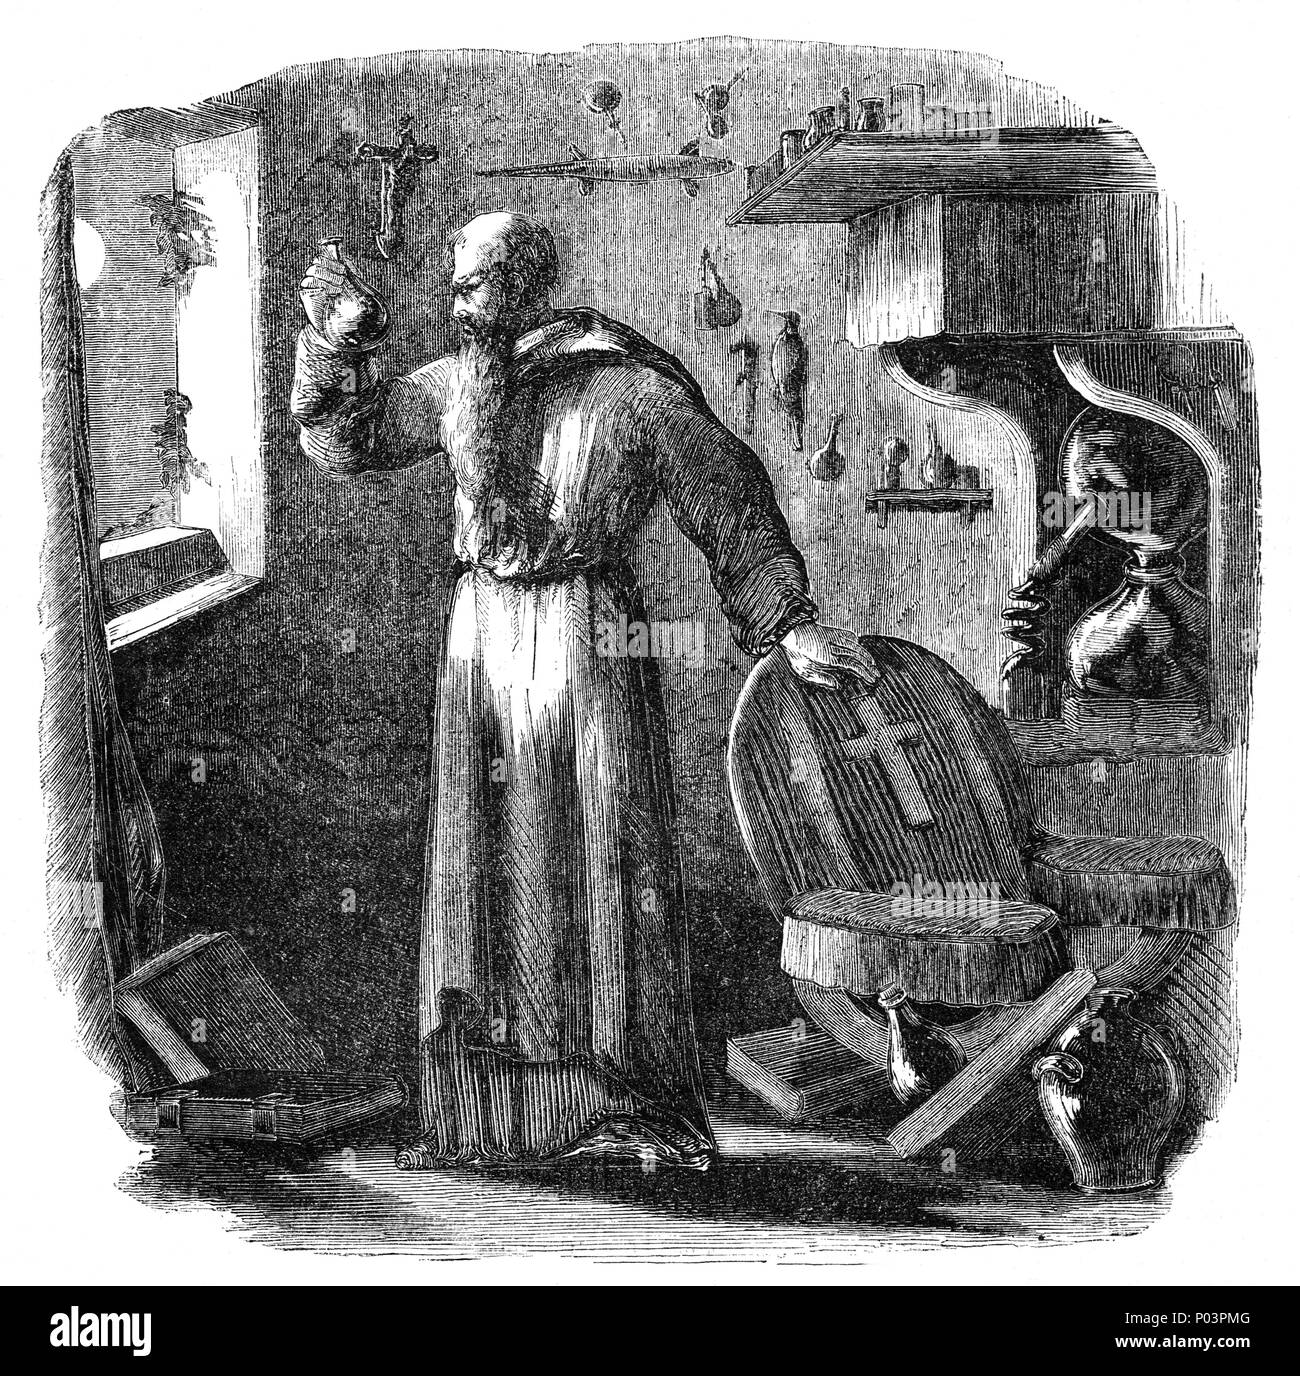 Roger Bacon (1219/20-1292), was an English philosopher and Franciscan friar who studied and later taught at Oxford University and the University of Paris. He had a reputation as an unconventional scholar, pursuing learning in alchemy and magic which earned him the soubriquet 'Doctor Mirabilis'. This led to his rejection from the Franciscans and eventual imprisonment. Bacon investigated optics and the refraction of light through lenses, leading to the development of spectacles. He sought reform of the calendar and was interested in astronomy. - Stock Image